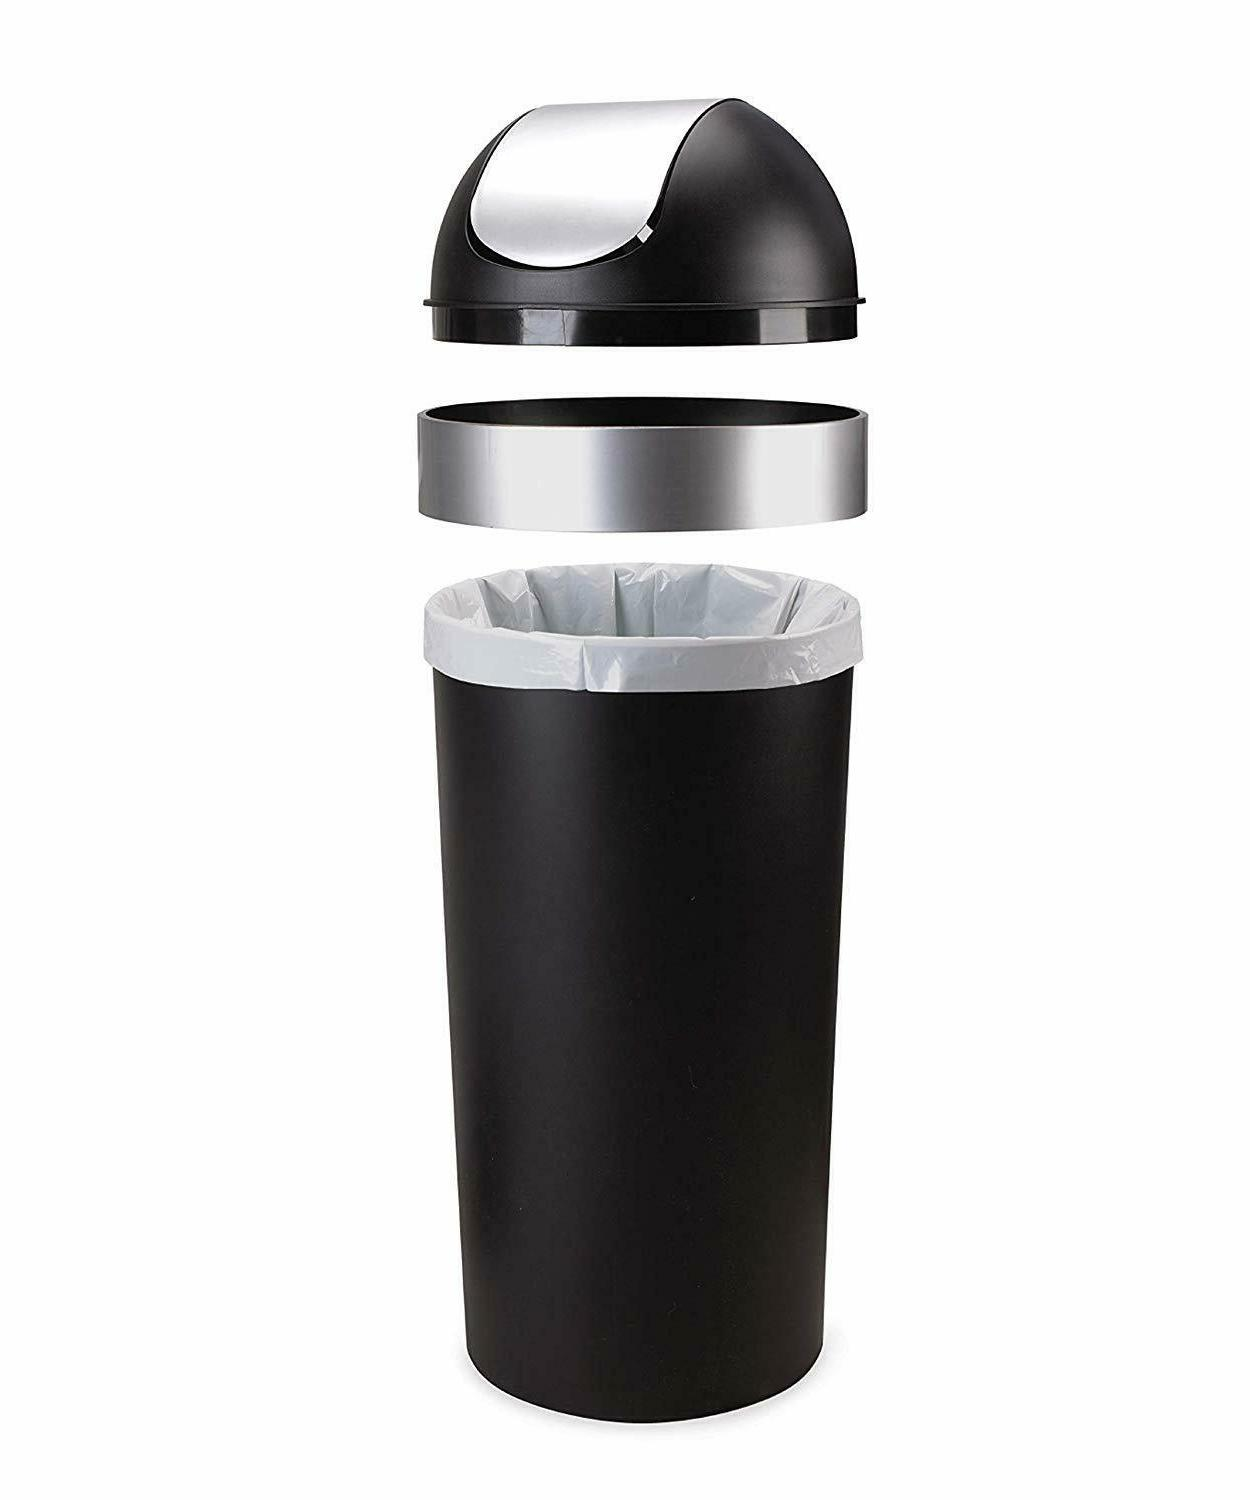 16-gallon swing top kitchen trash can large 35-inch